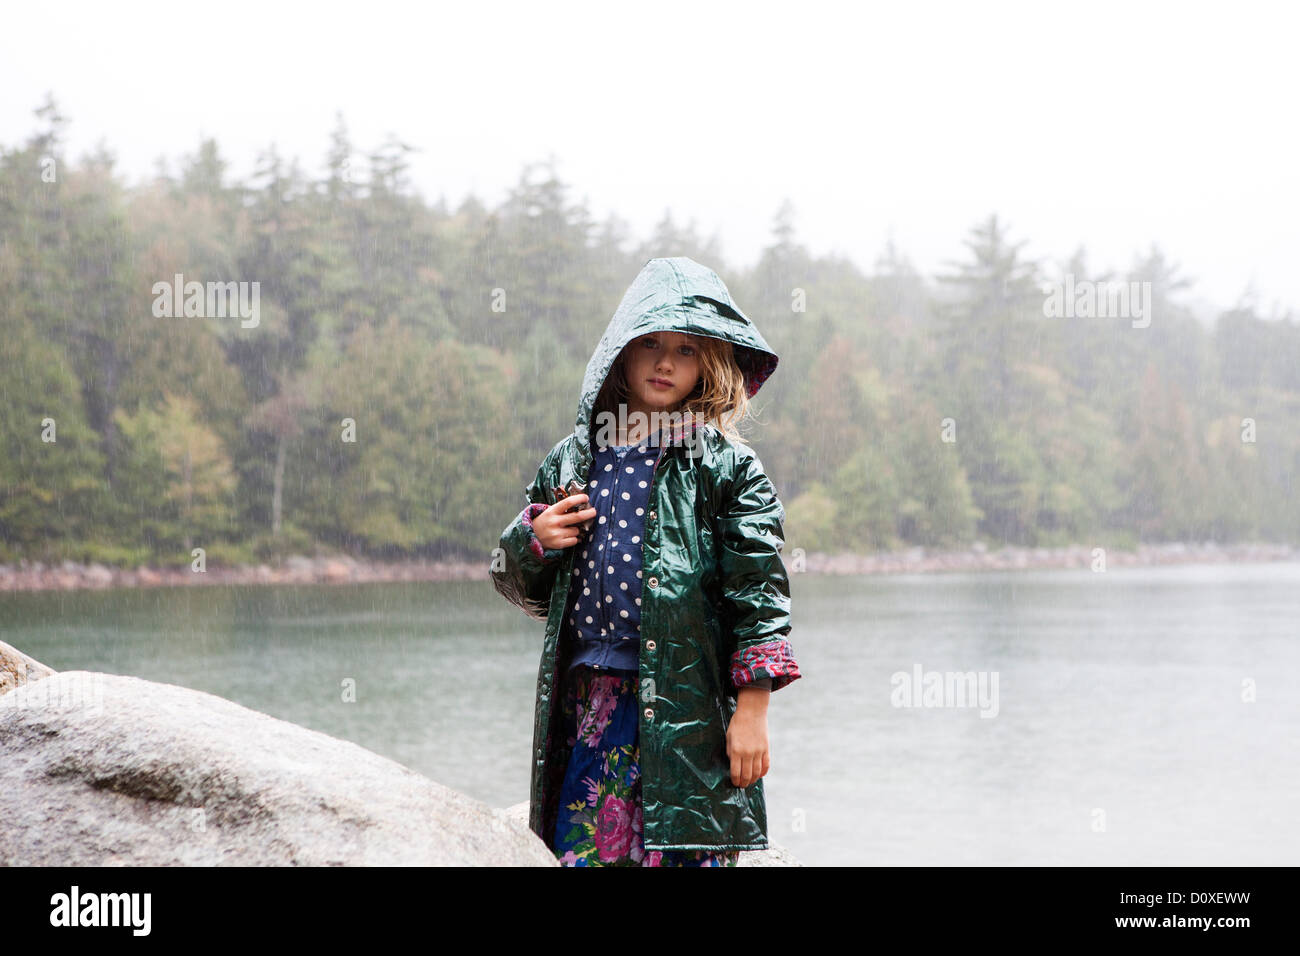 Girl in the rain at Acadia National Park, Maine, USA - Stock Image